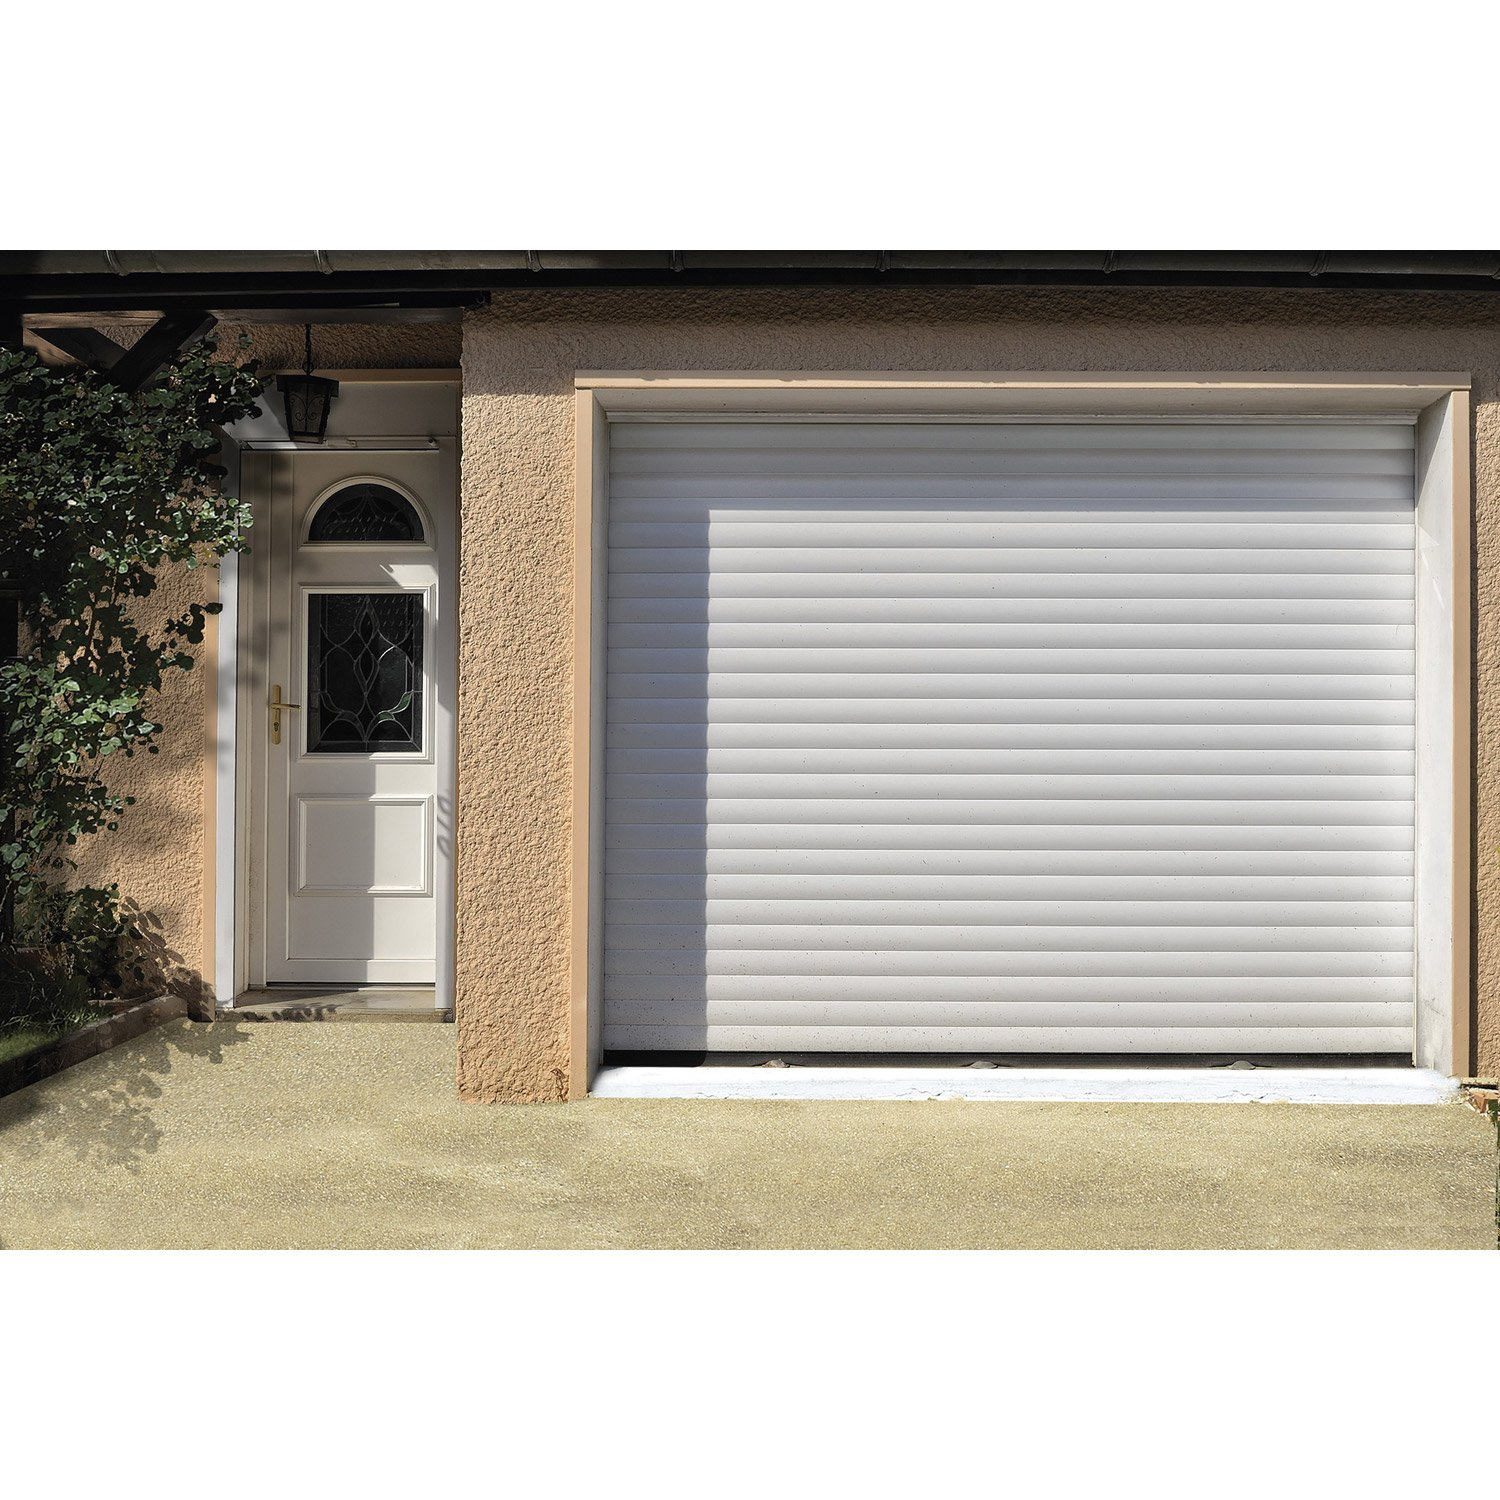 Porte de garage coulissante sur mesure leroy merlin - Isolation porte de garage coulissante ...